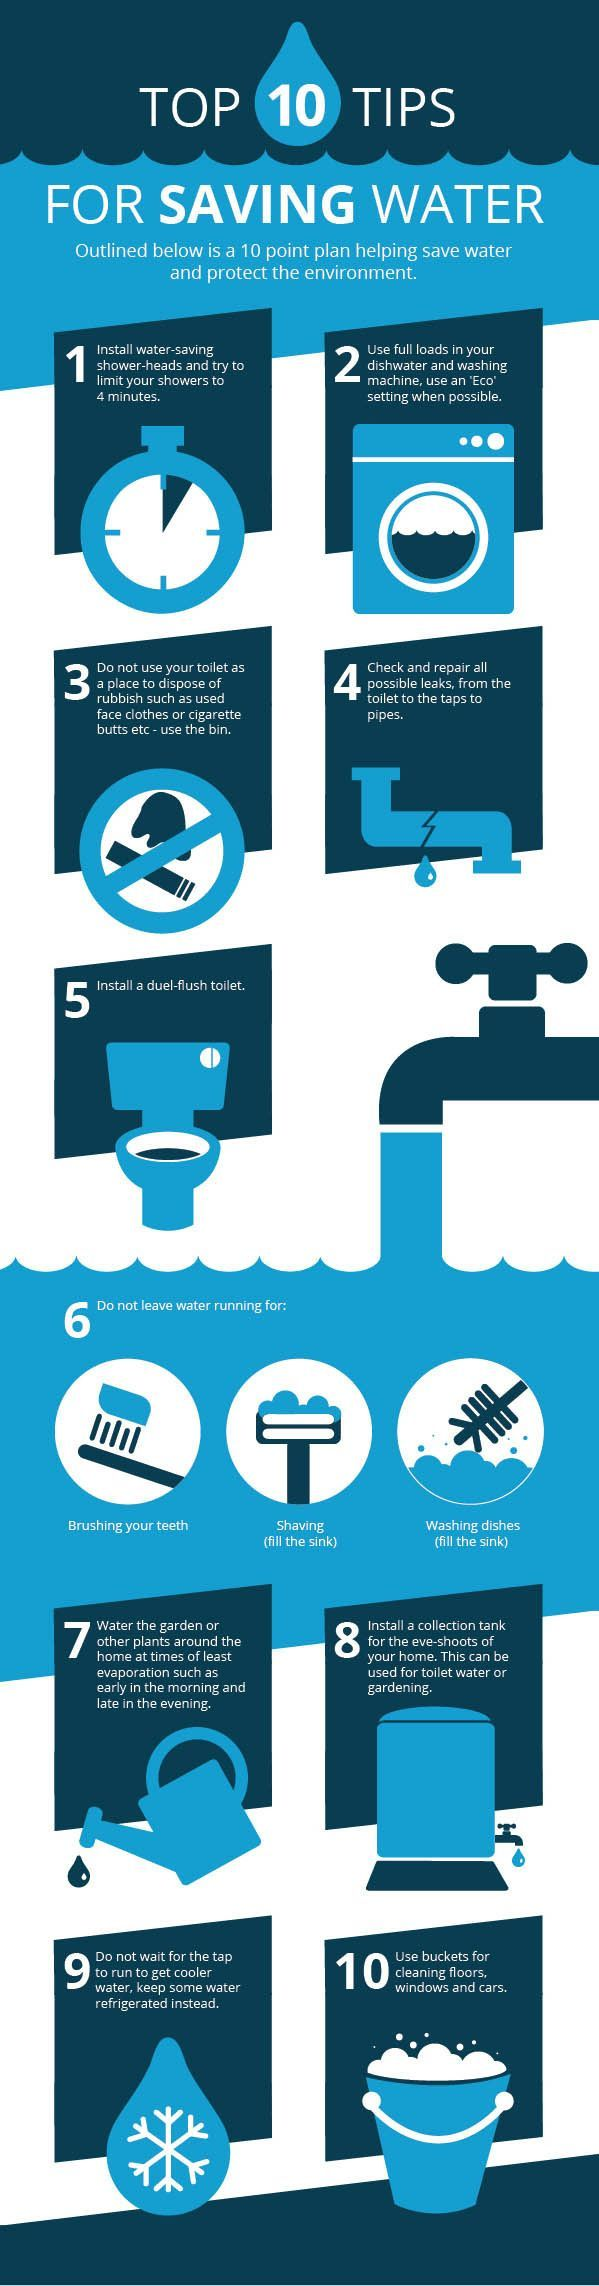 10 great ways to save water in your home!